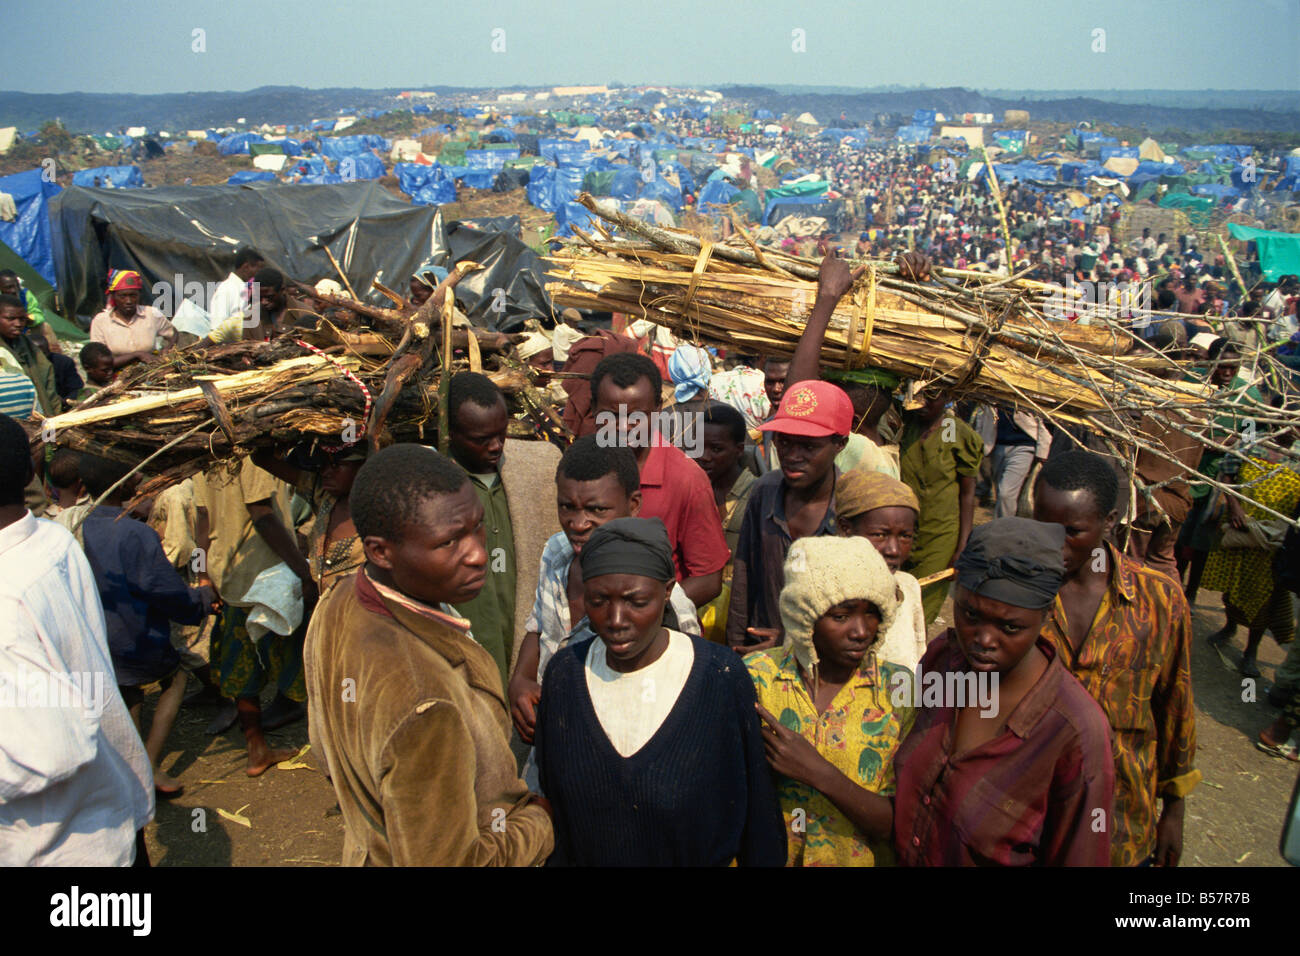 Refugees from war, Xatale Camp, Zaire, Africa - Stock Image